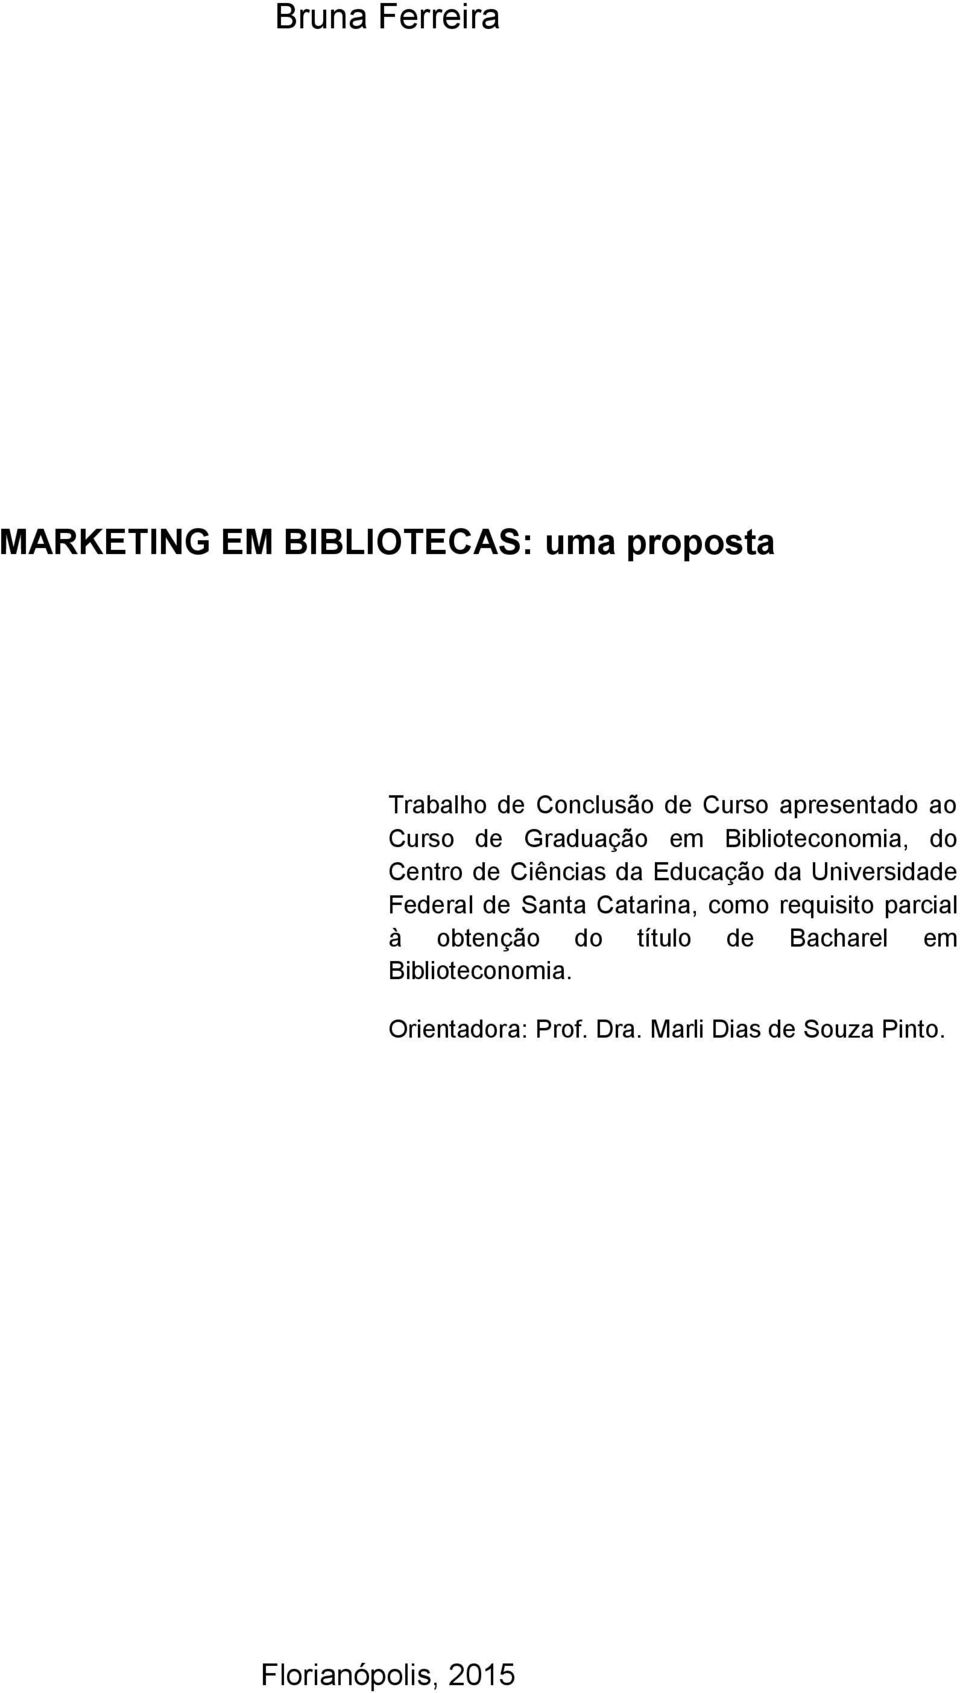 Universidade Federal de Santa Catarina, como requisito parcial à obtenção do título de